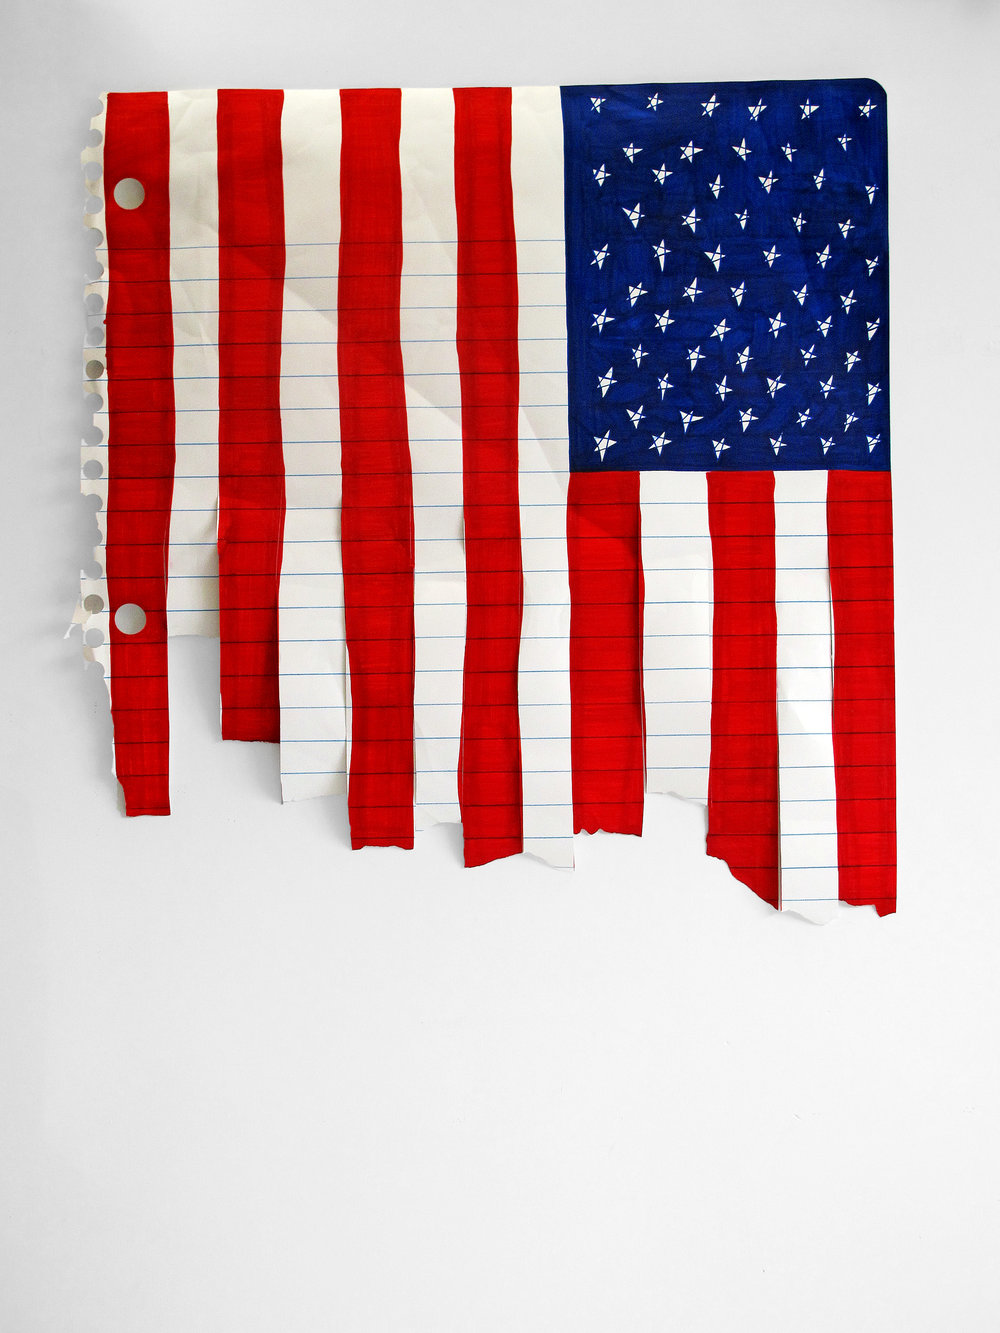 Michael Scoggins, Stars and Stripes Forever? (aka these colors don't run), 2006, marker, colored pencil on paper, 54 x 51 inches